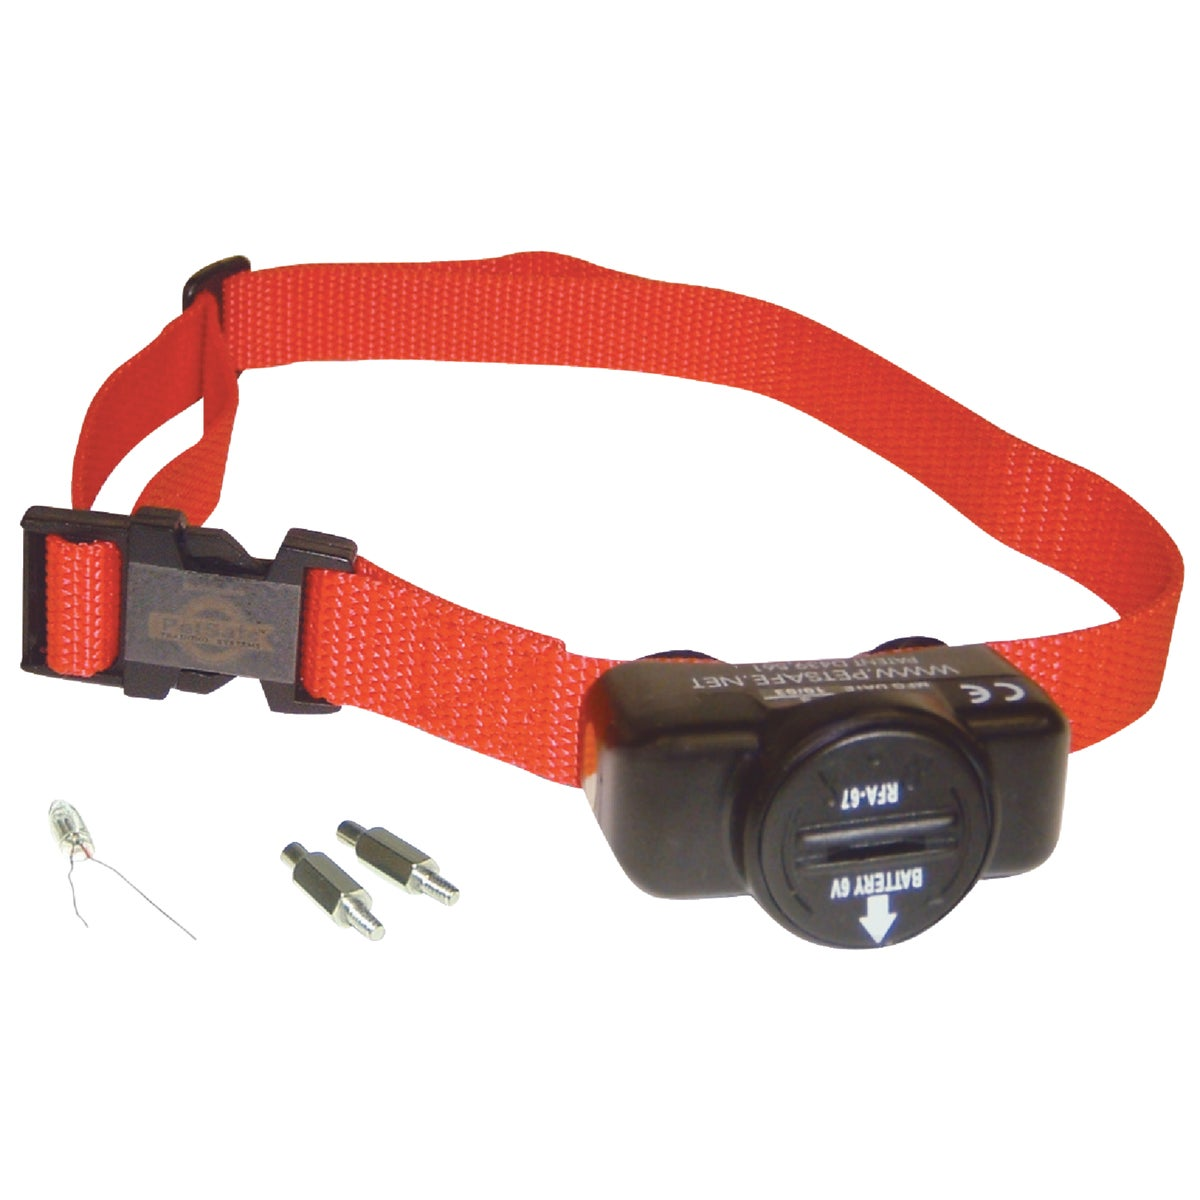 ULTR-LIG RECEIVER COLLAR